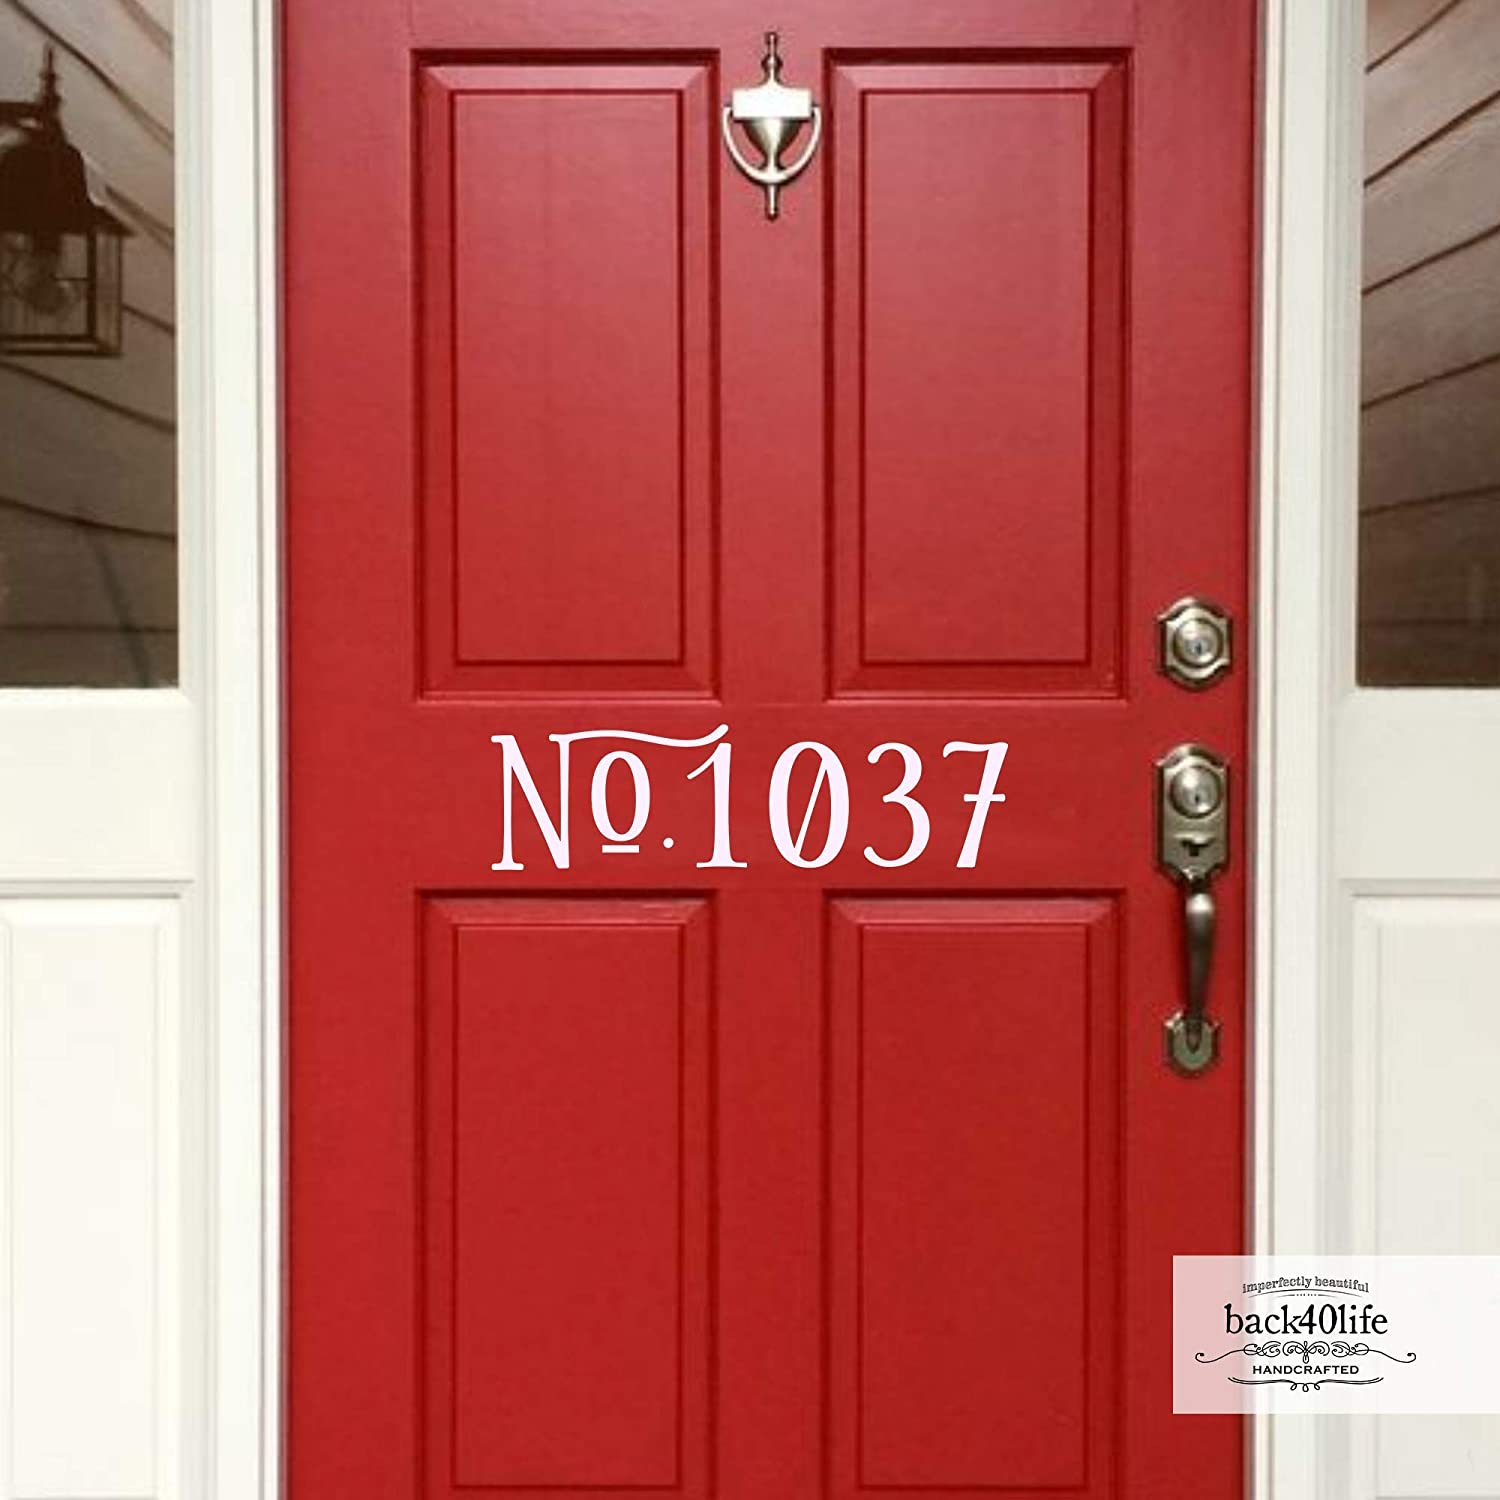 Back40life - House Number Cash special price Decal E-002g Gorgeous Door